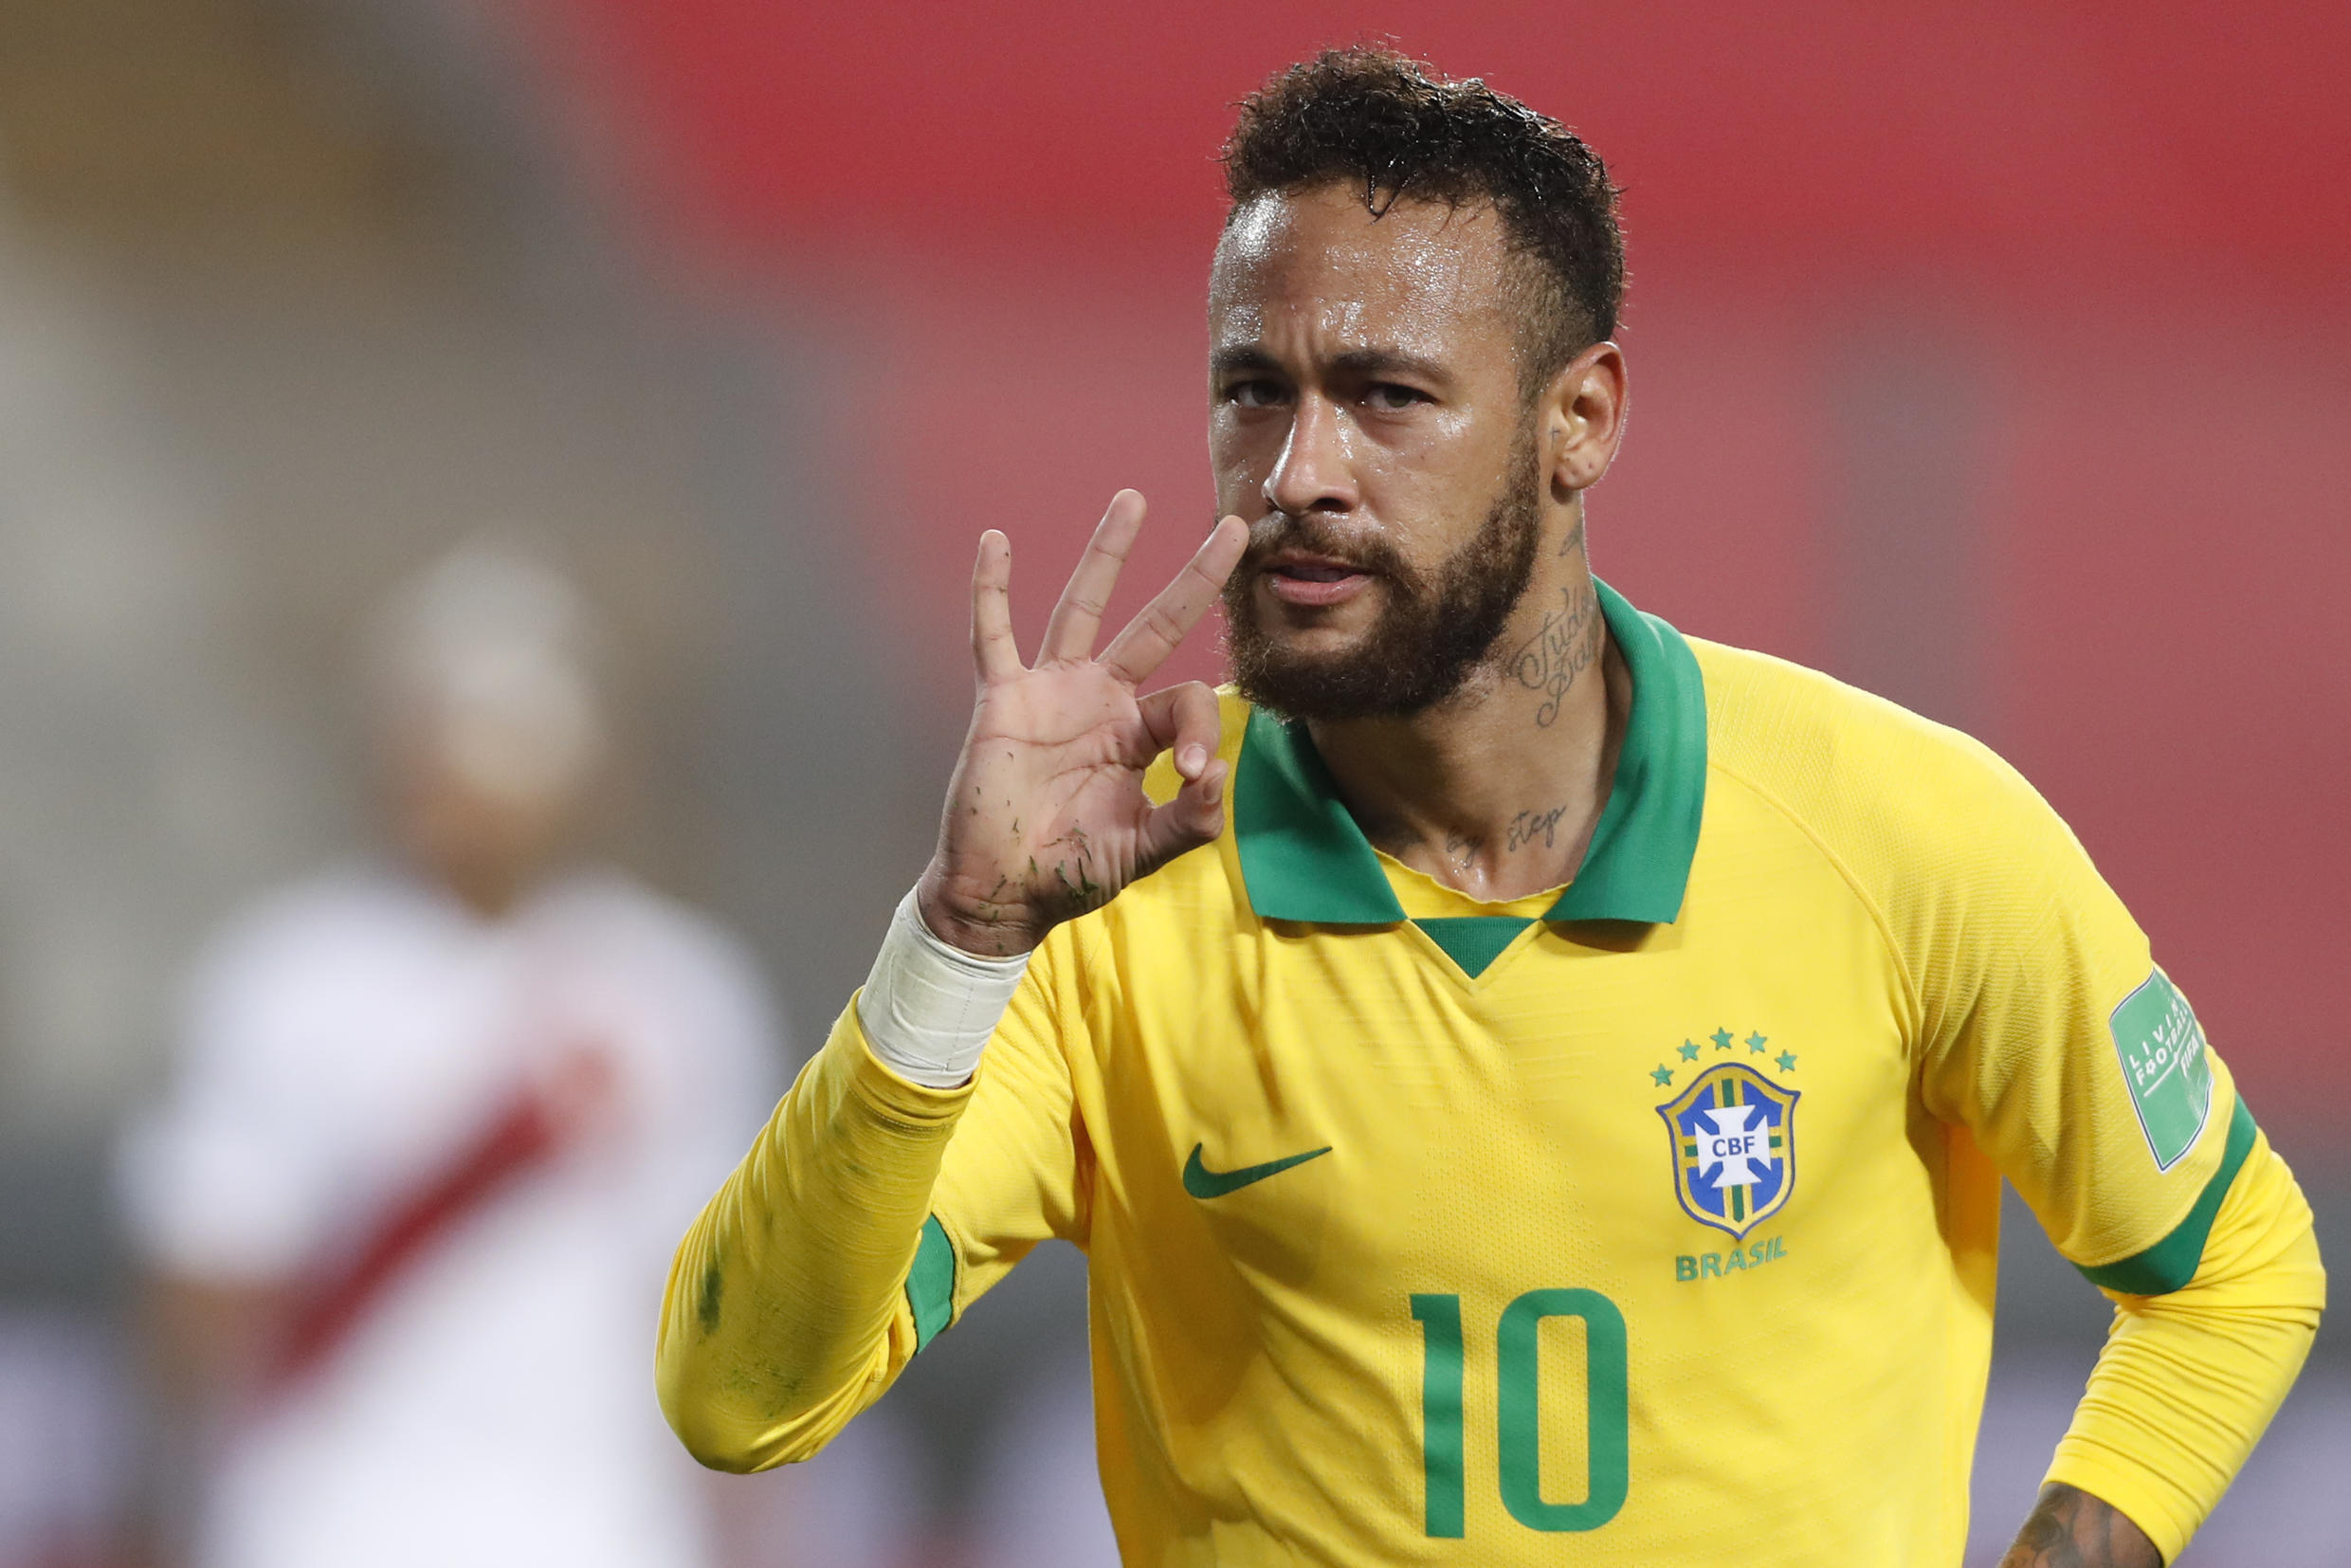 Alas, the chances of Brazilian football superstar Neymar, 29, playing in the Summer Olympics are slim